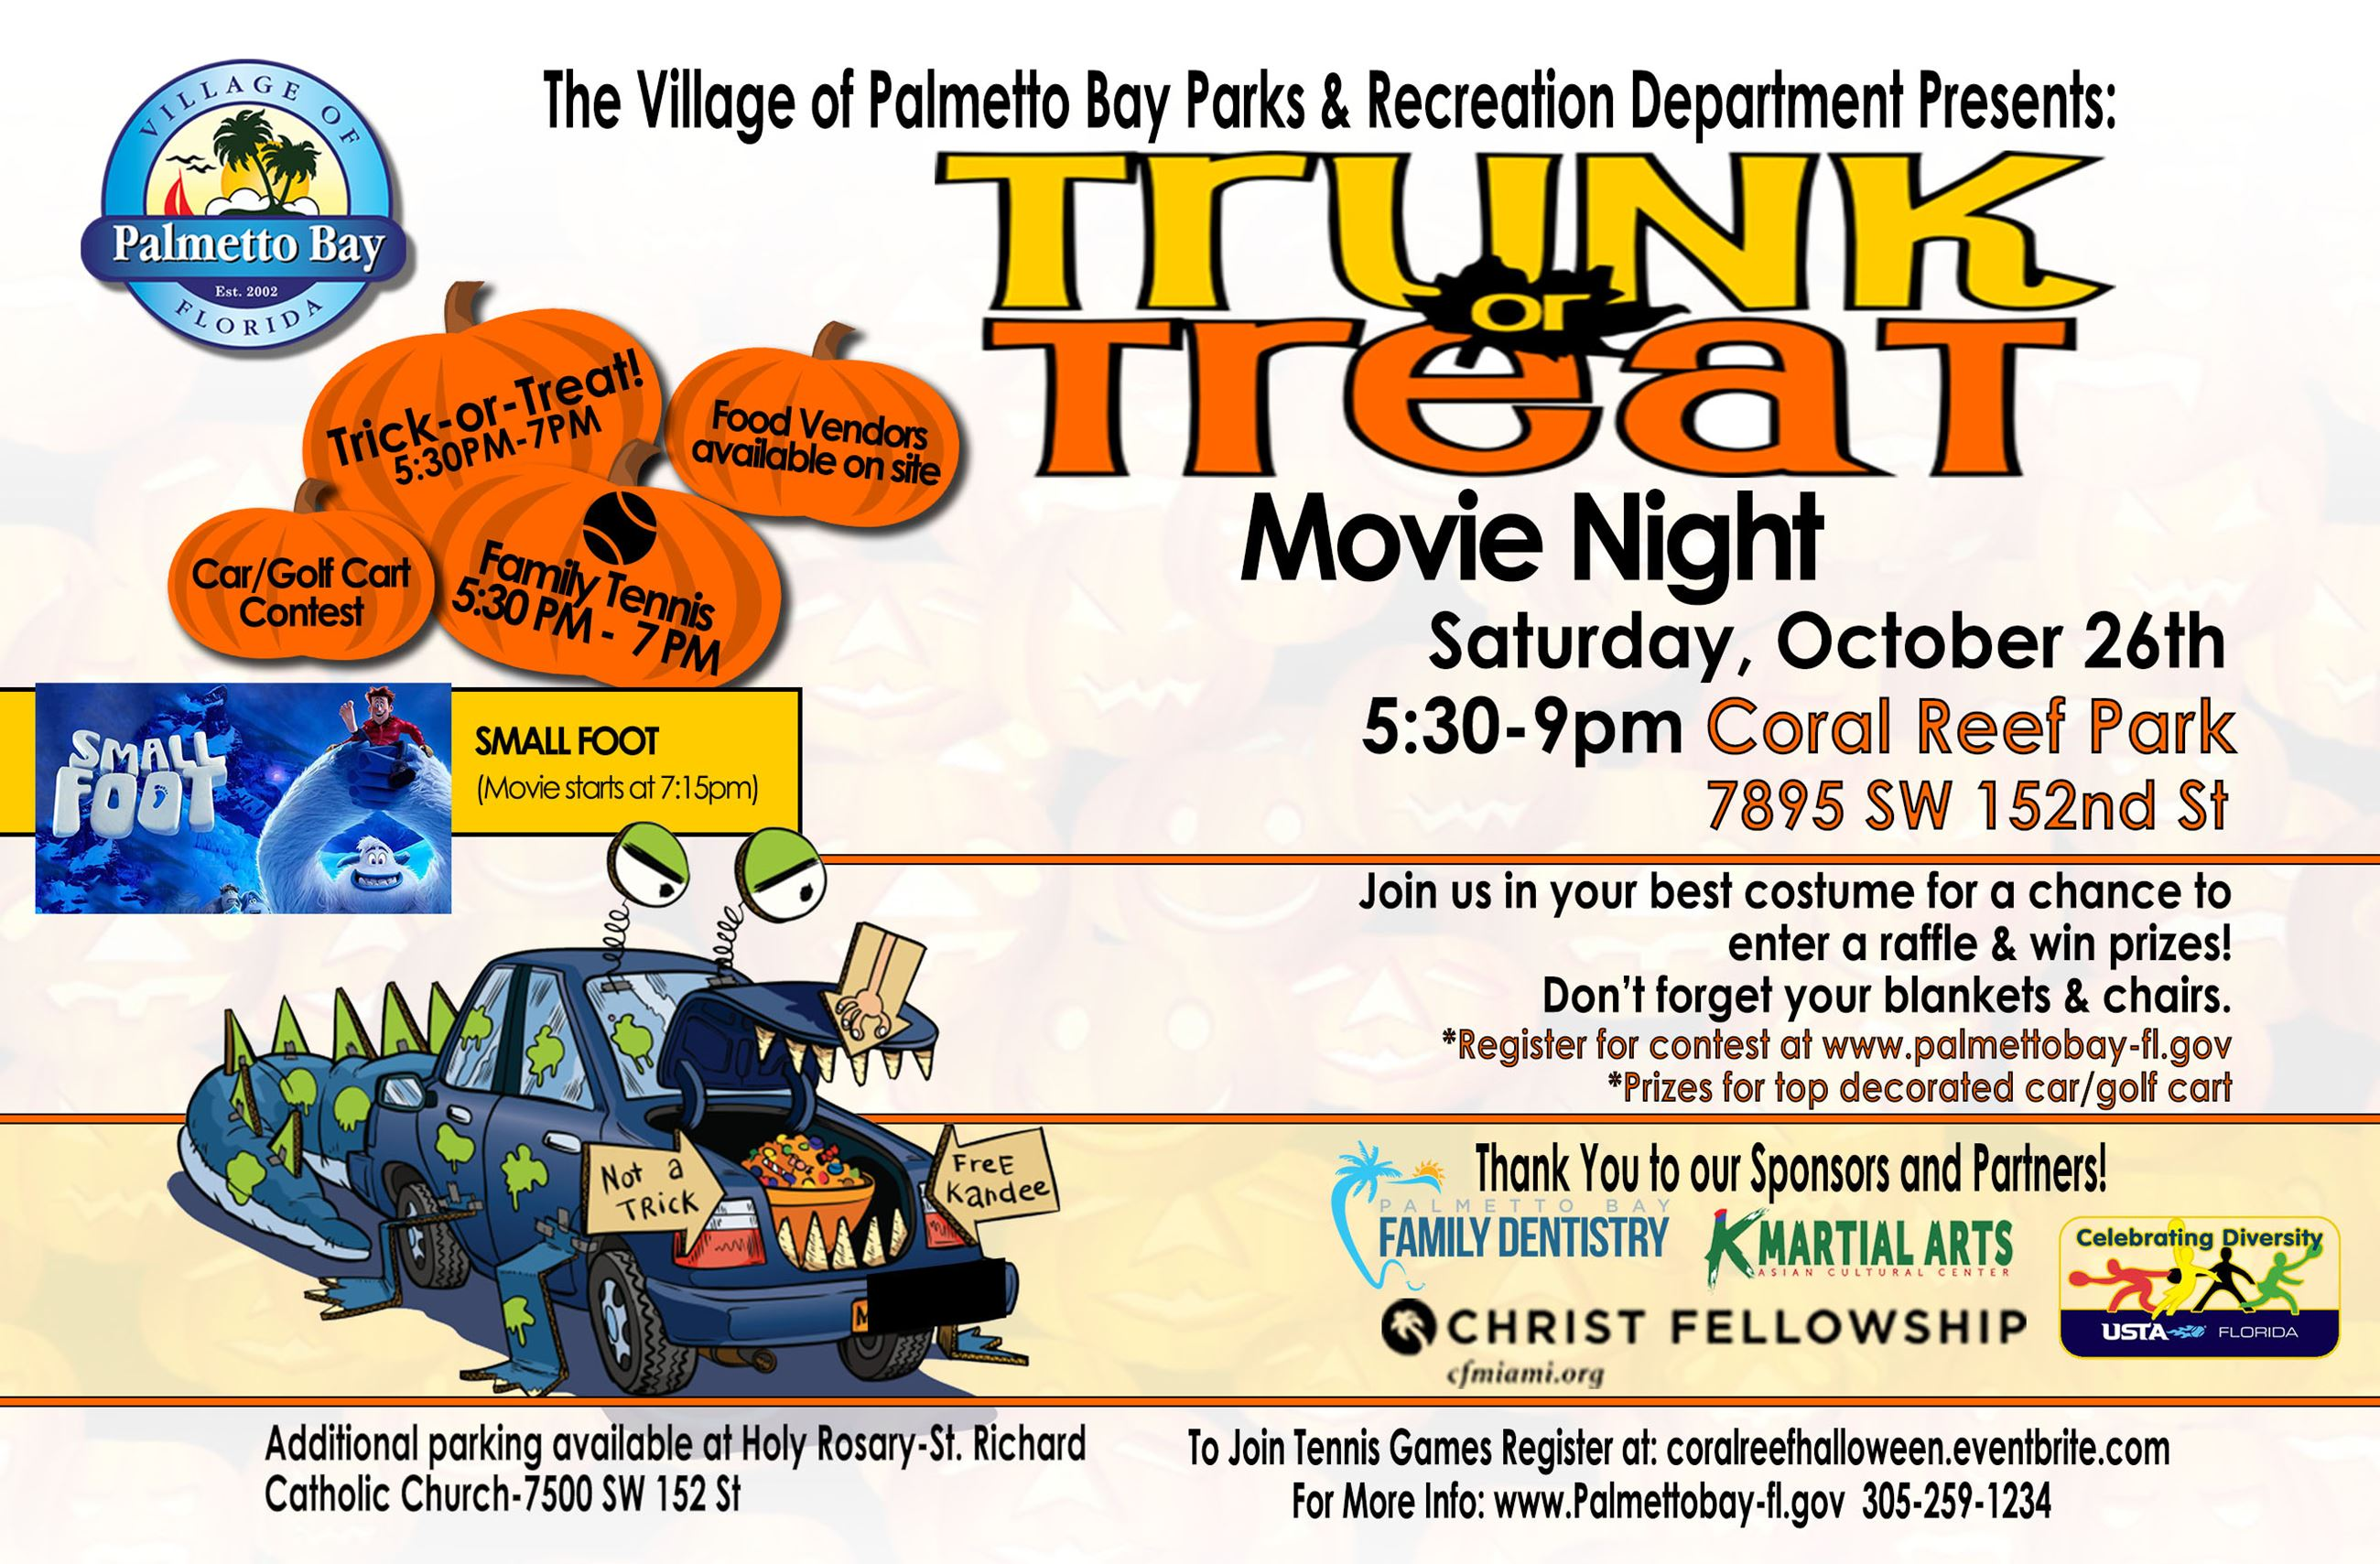 Trunk or Treat Movie Night this Saturday, October 26th from 5:30 - 9 PM at Coral Reef Park 7895 SW 1